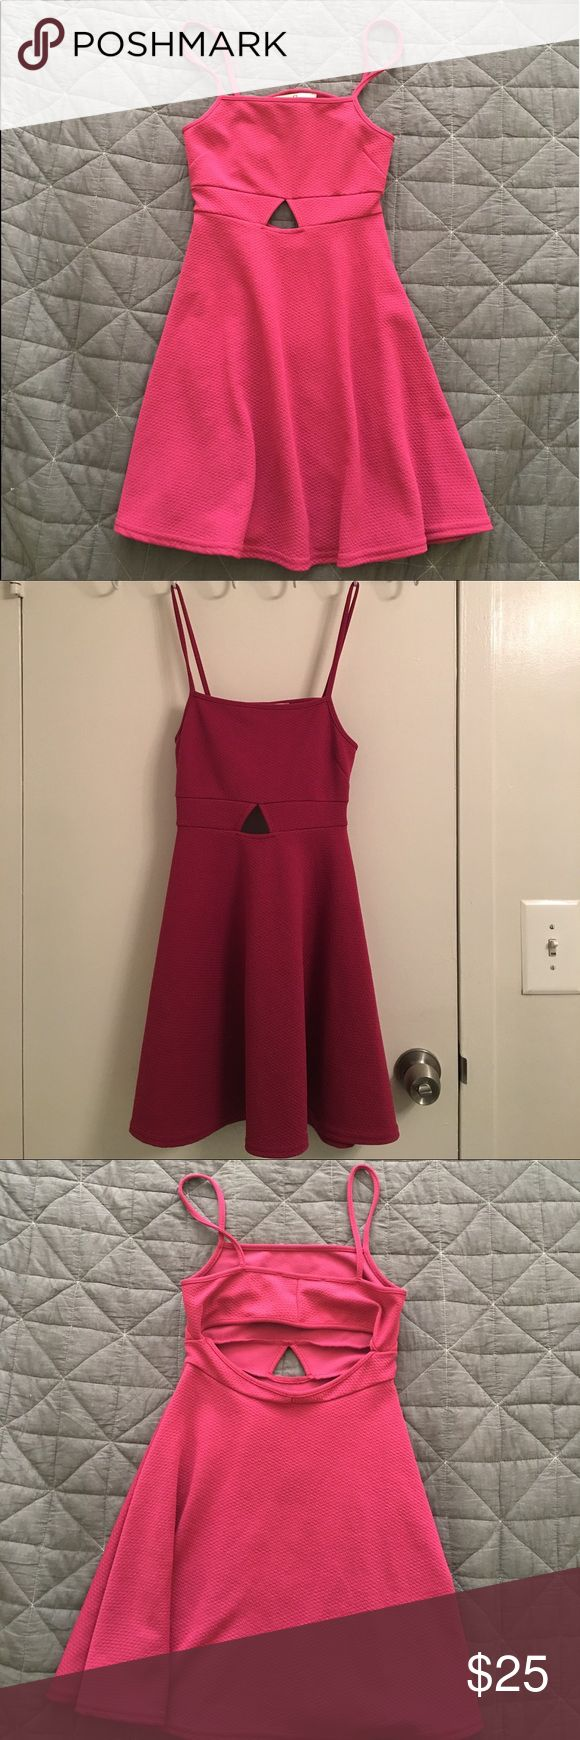 Urban Outfitters Cutout Skater Dress A fit&flare dress by OH MY LOVE (London). Worn only a couple times and in excellent condition. Very comfortable and not easy to get wrinkles. Urban Outfitters Dresses Mini